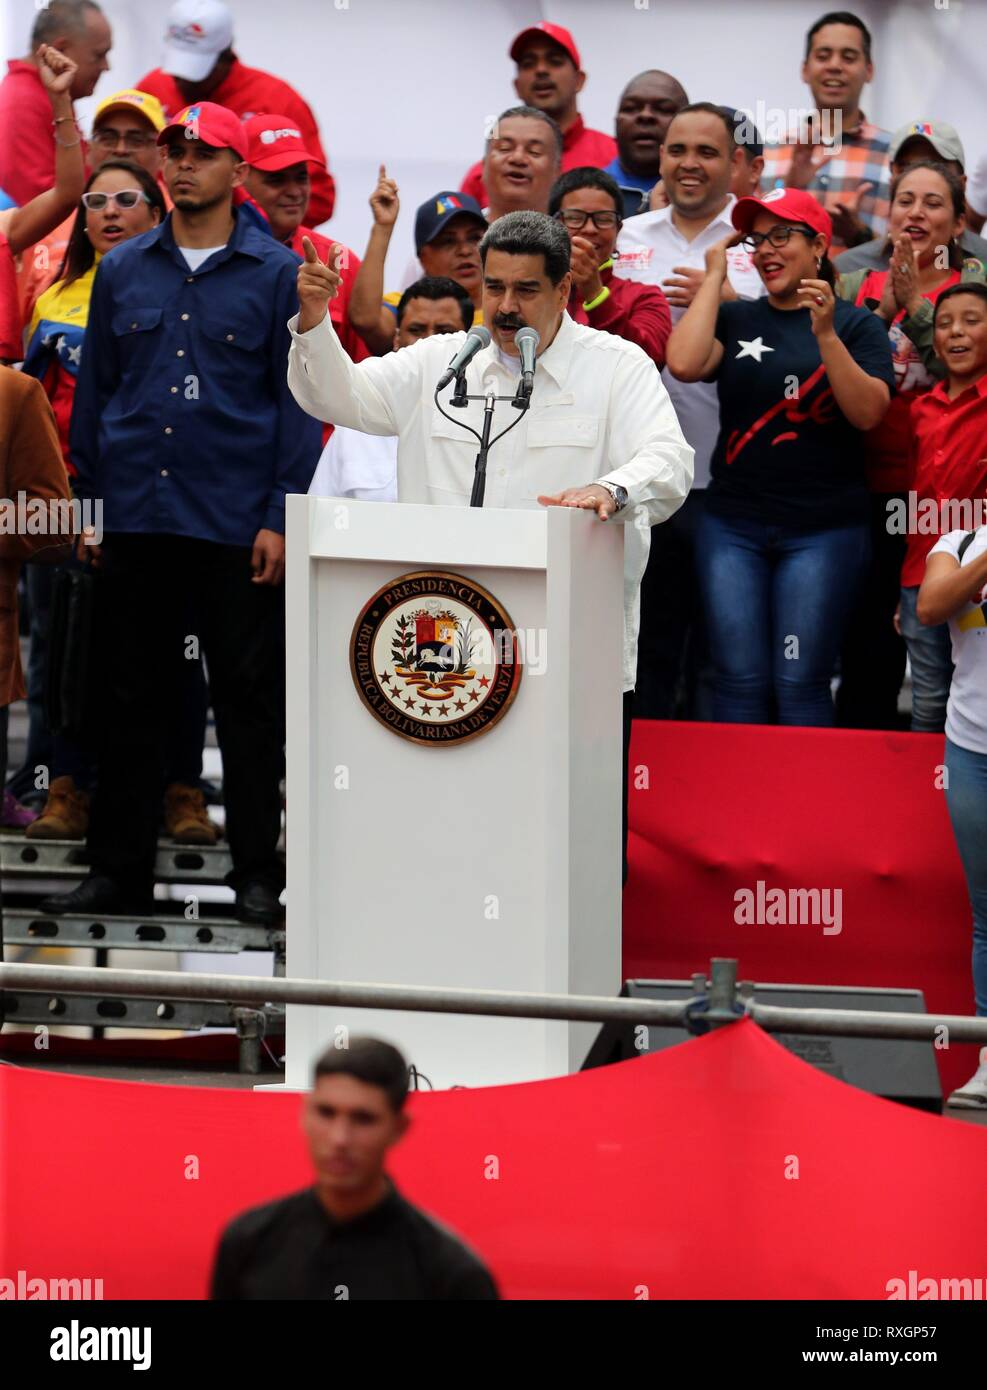 Caracas, Venezuela. 09th Mar, 2019. The President of Venezuela Nicolas Maduro (C) offers the closing speech of the march against imperialism and electric sabotage, in Caracas, Venezuela, 09 March 2019. Credit: Raul Martinez/EFE/Alamy Live News - Stock Image